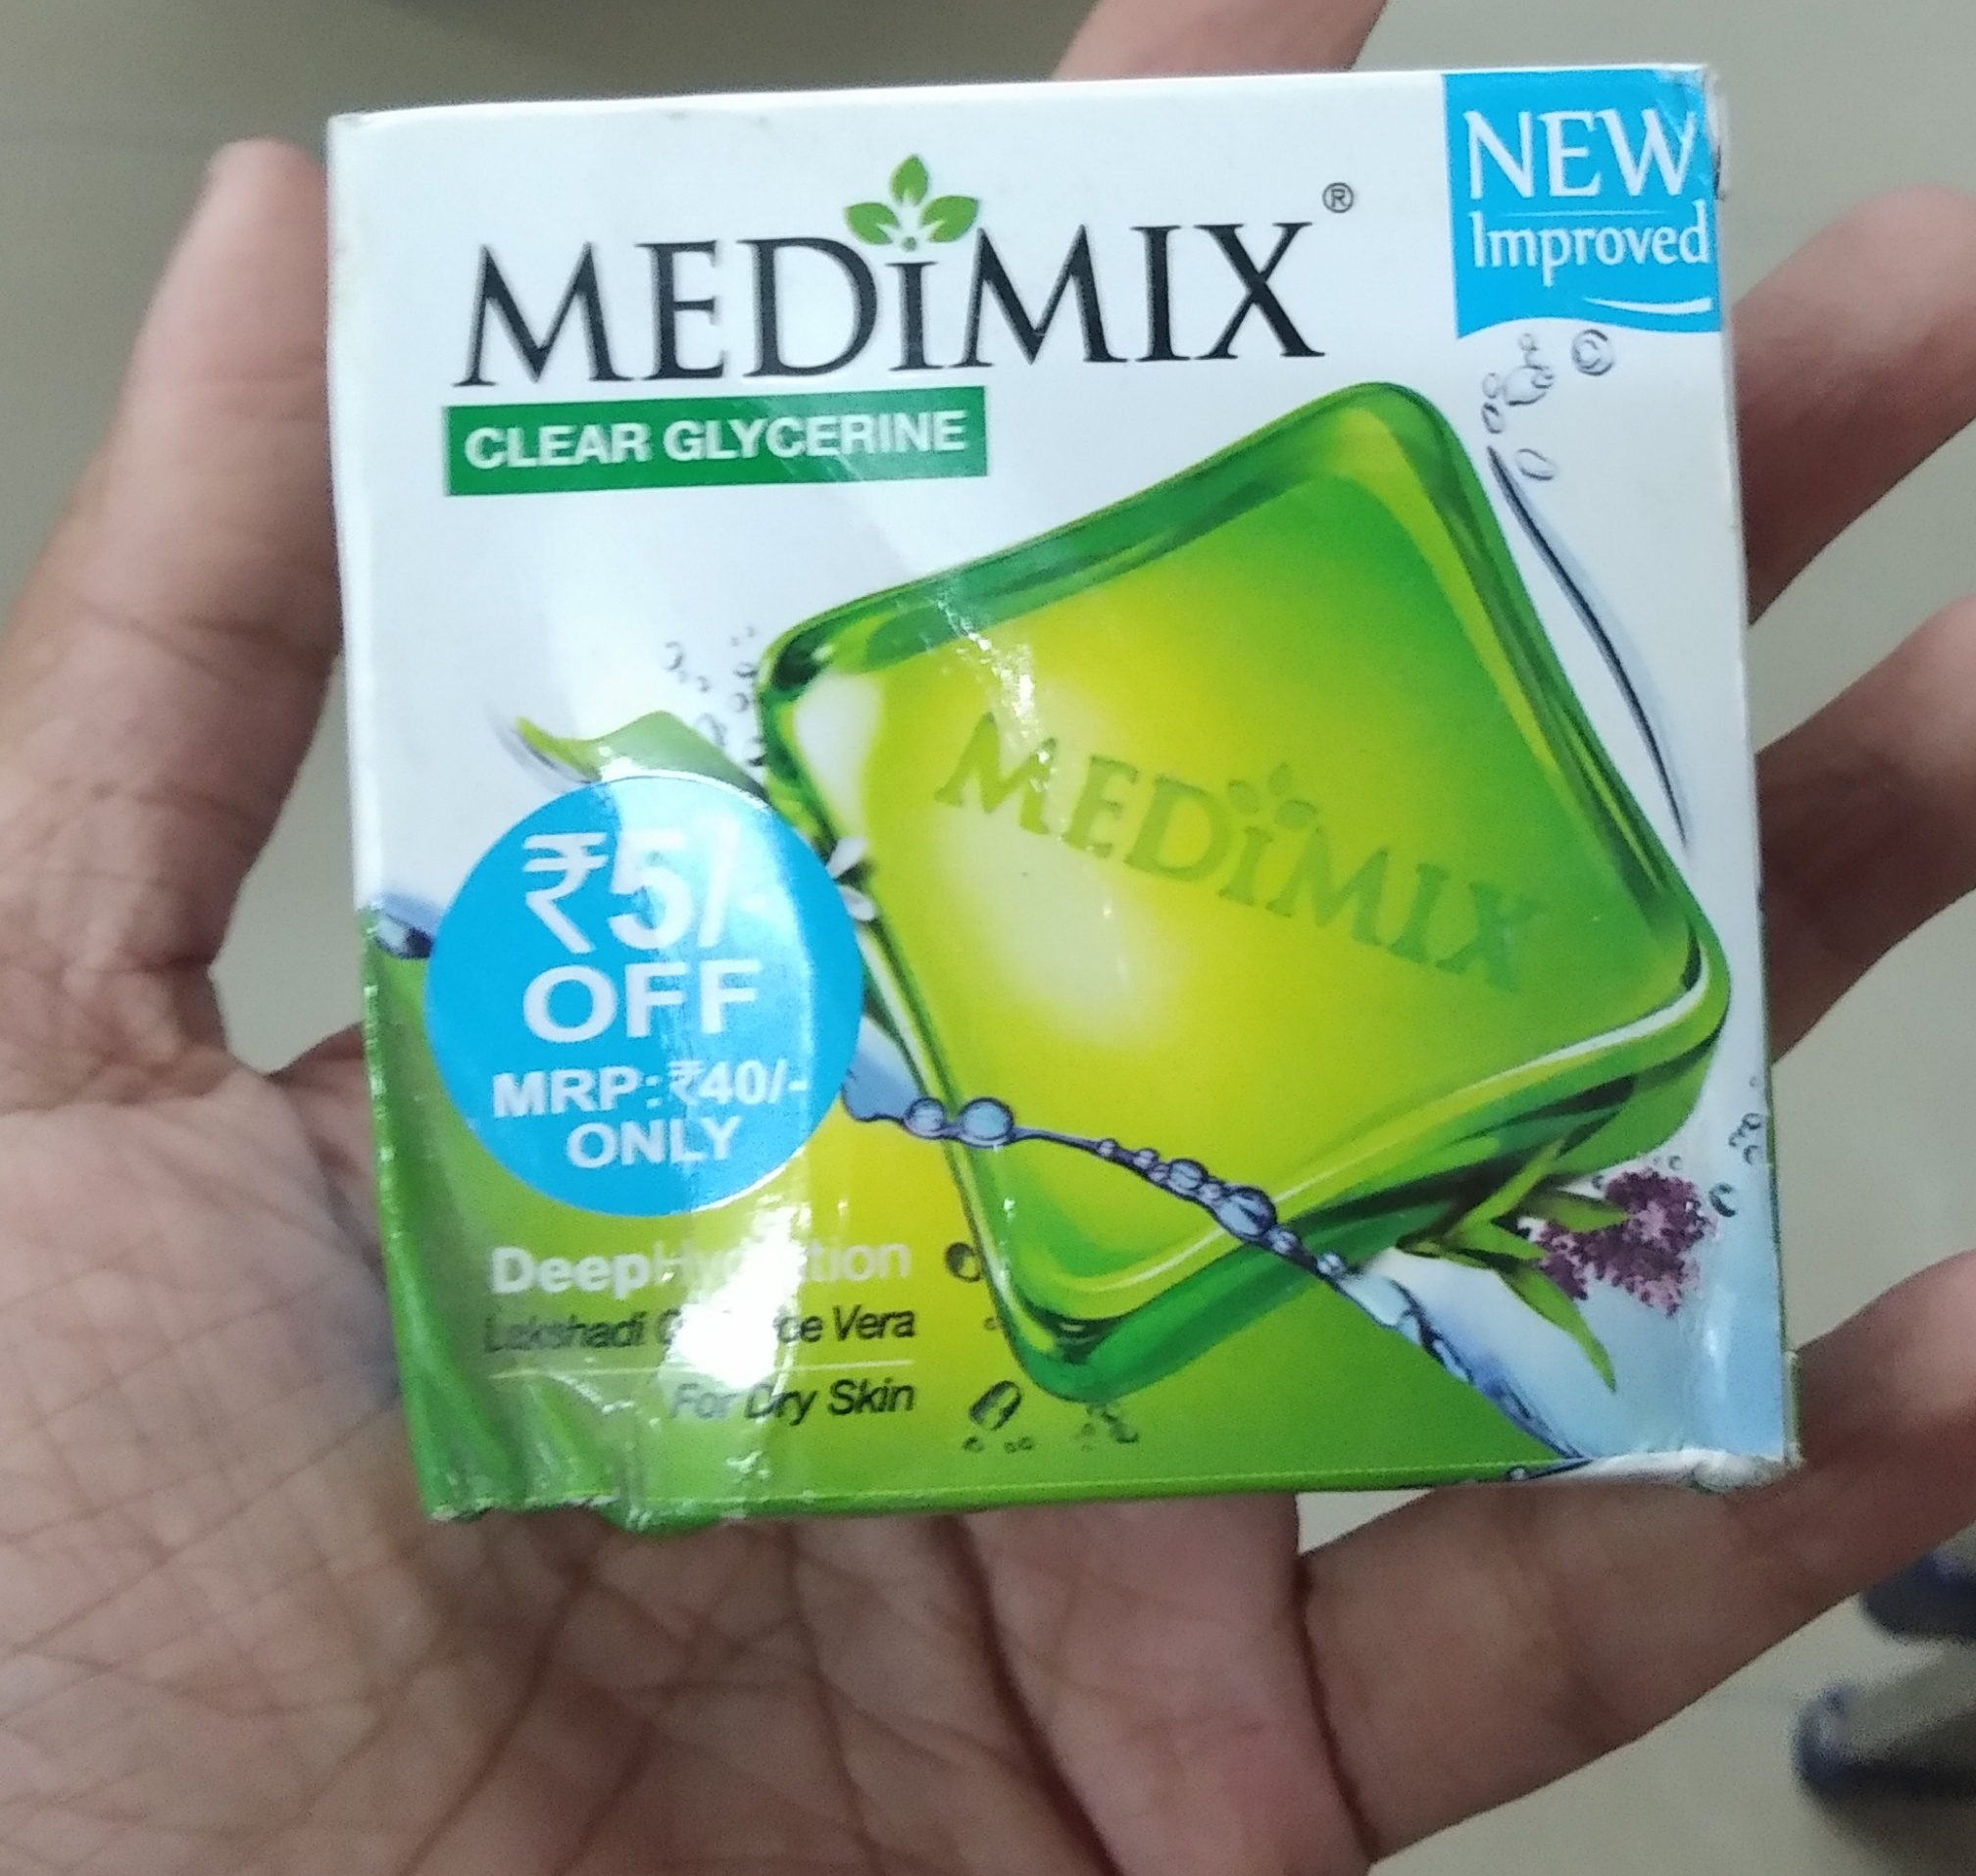 Medimix Ayurvedic Natural Glycerine Soap-Good one-By Nasreen-2